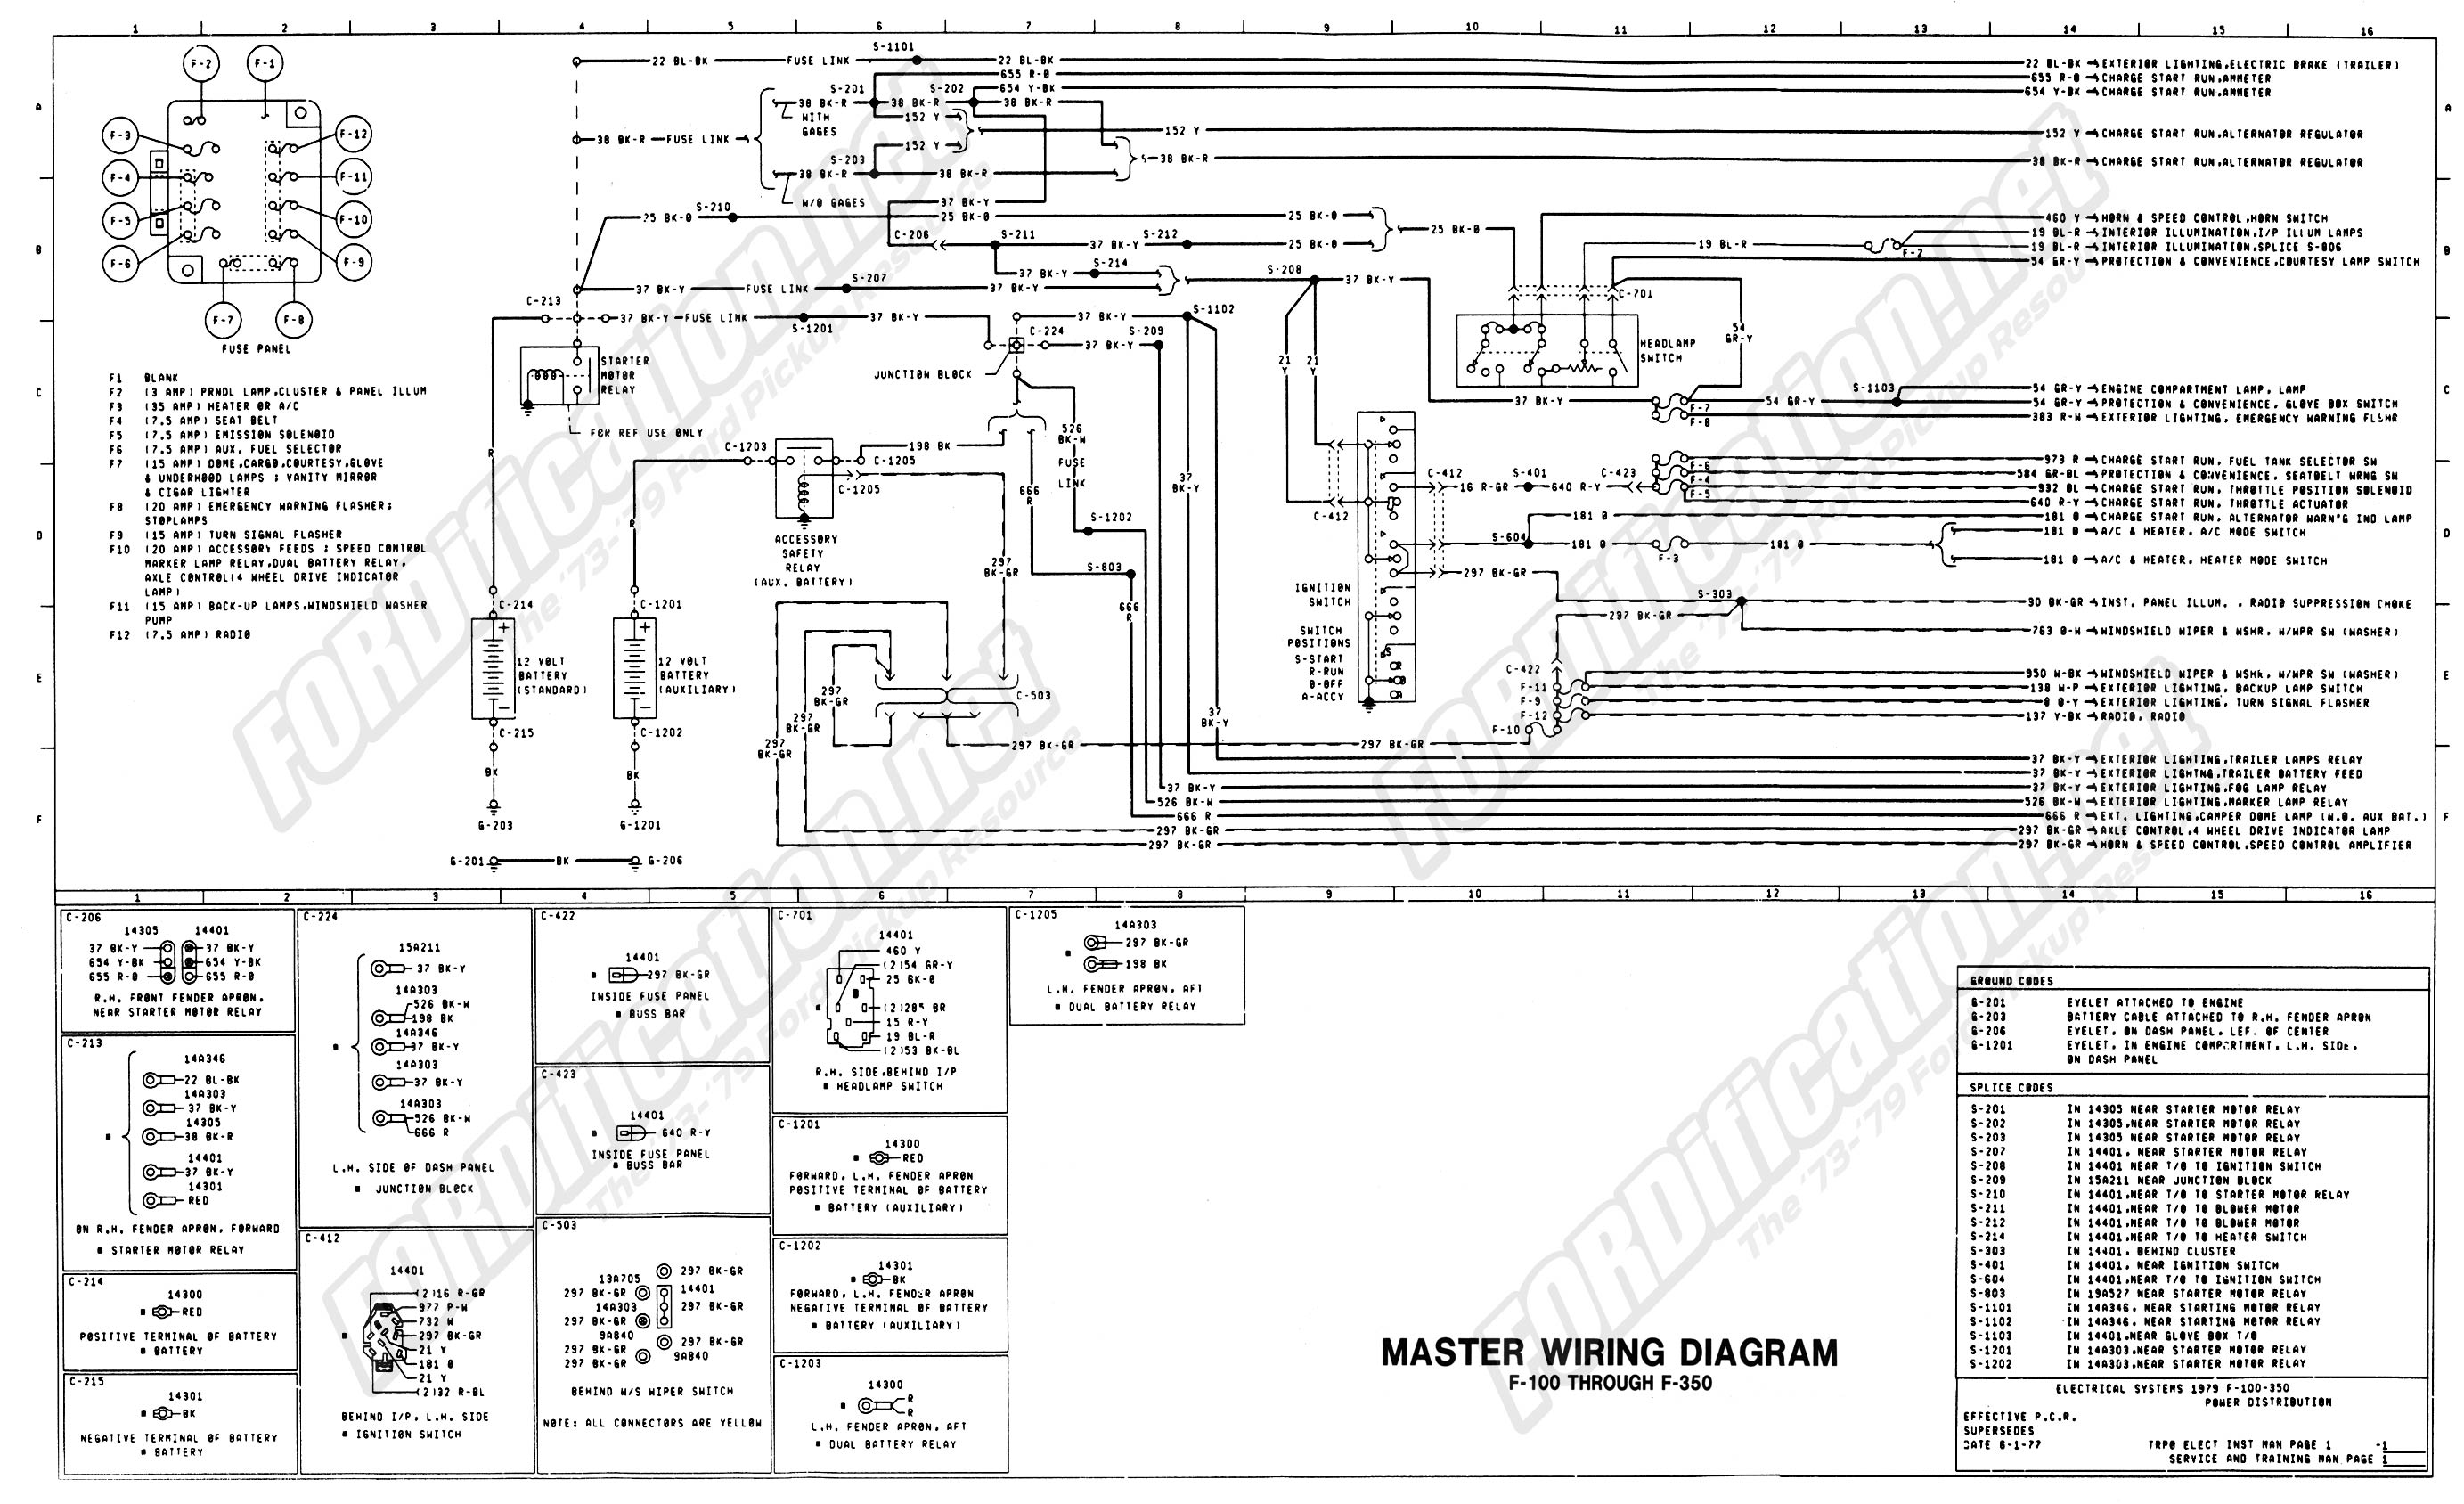 wiring_79master_1of9 1973 1979 ford truck wiring diagrams & schematics fordification net Ford Mirror Wiring Harness at honlapkeszites.co